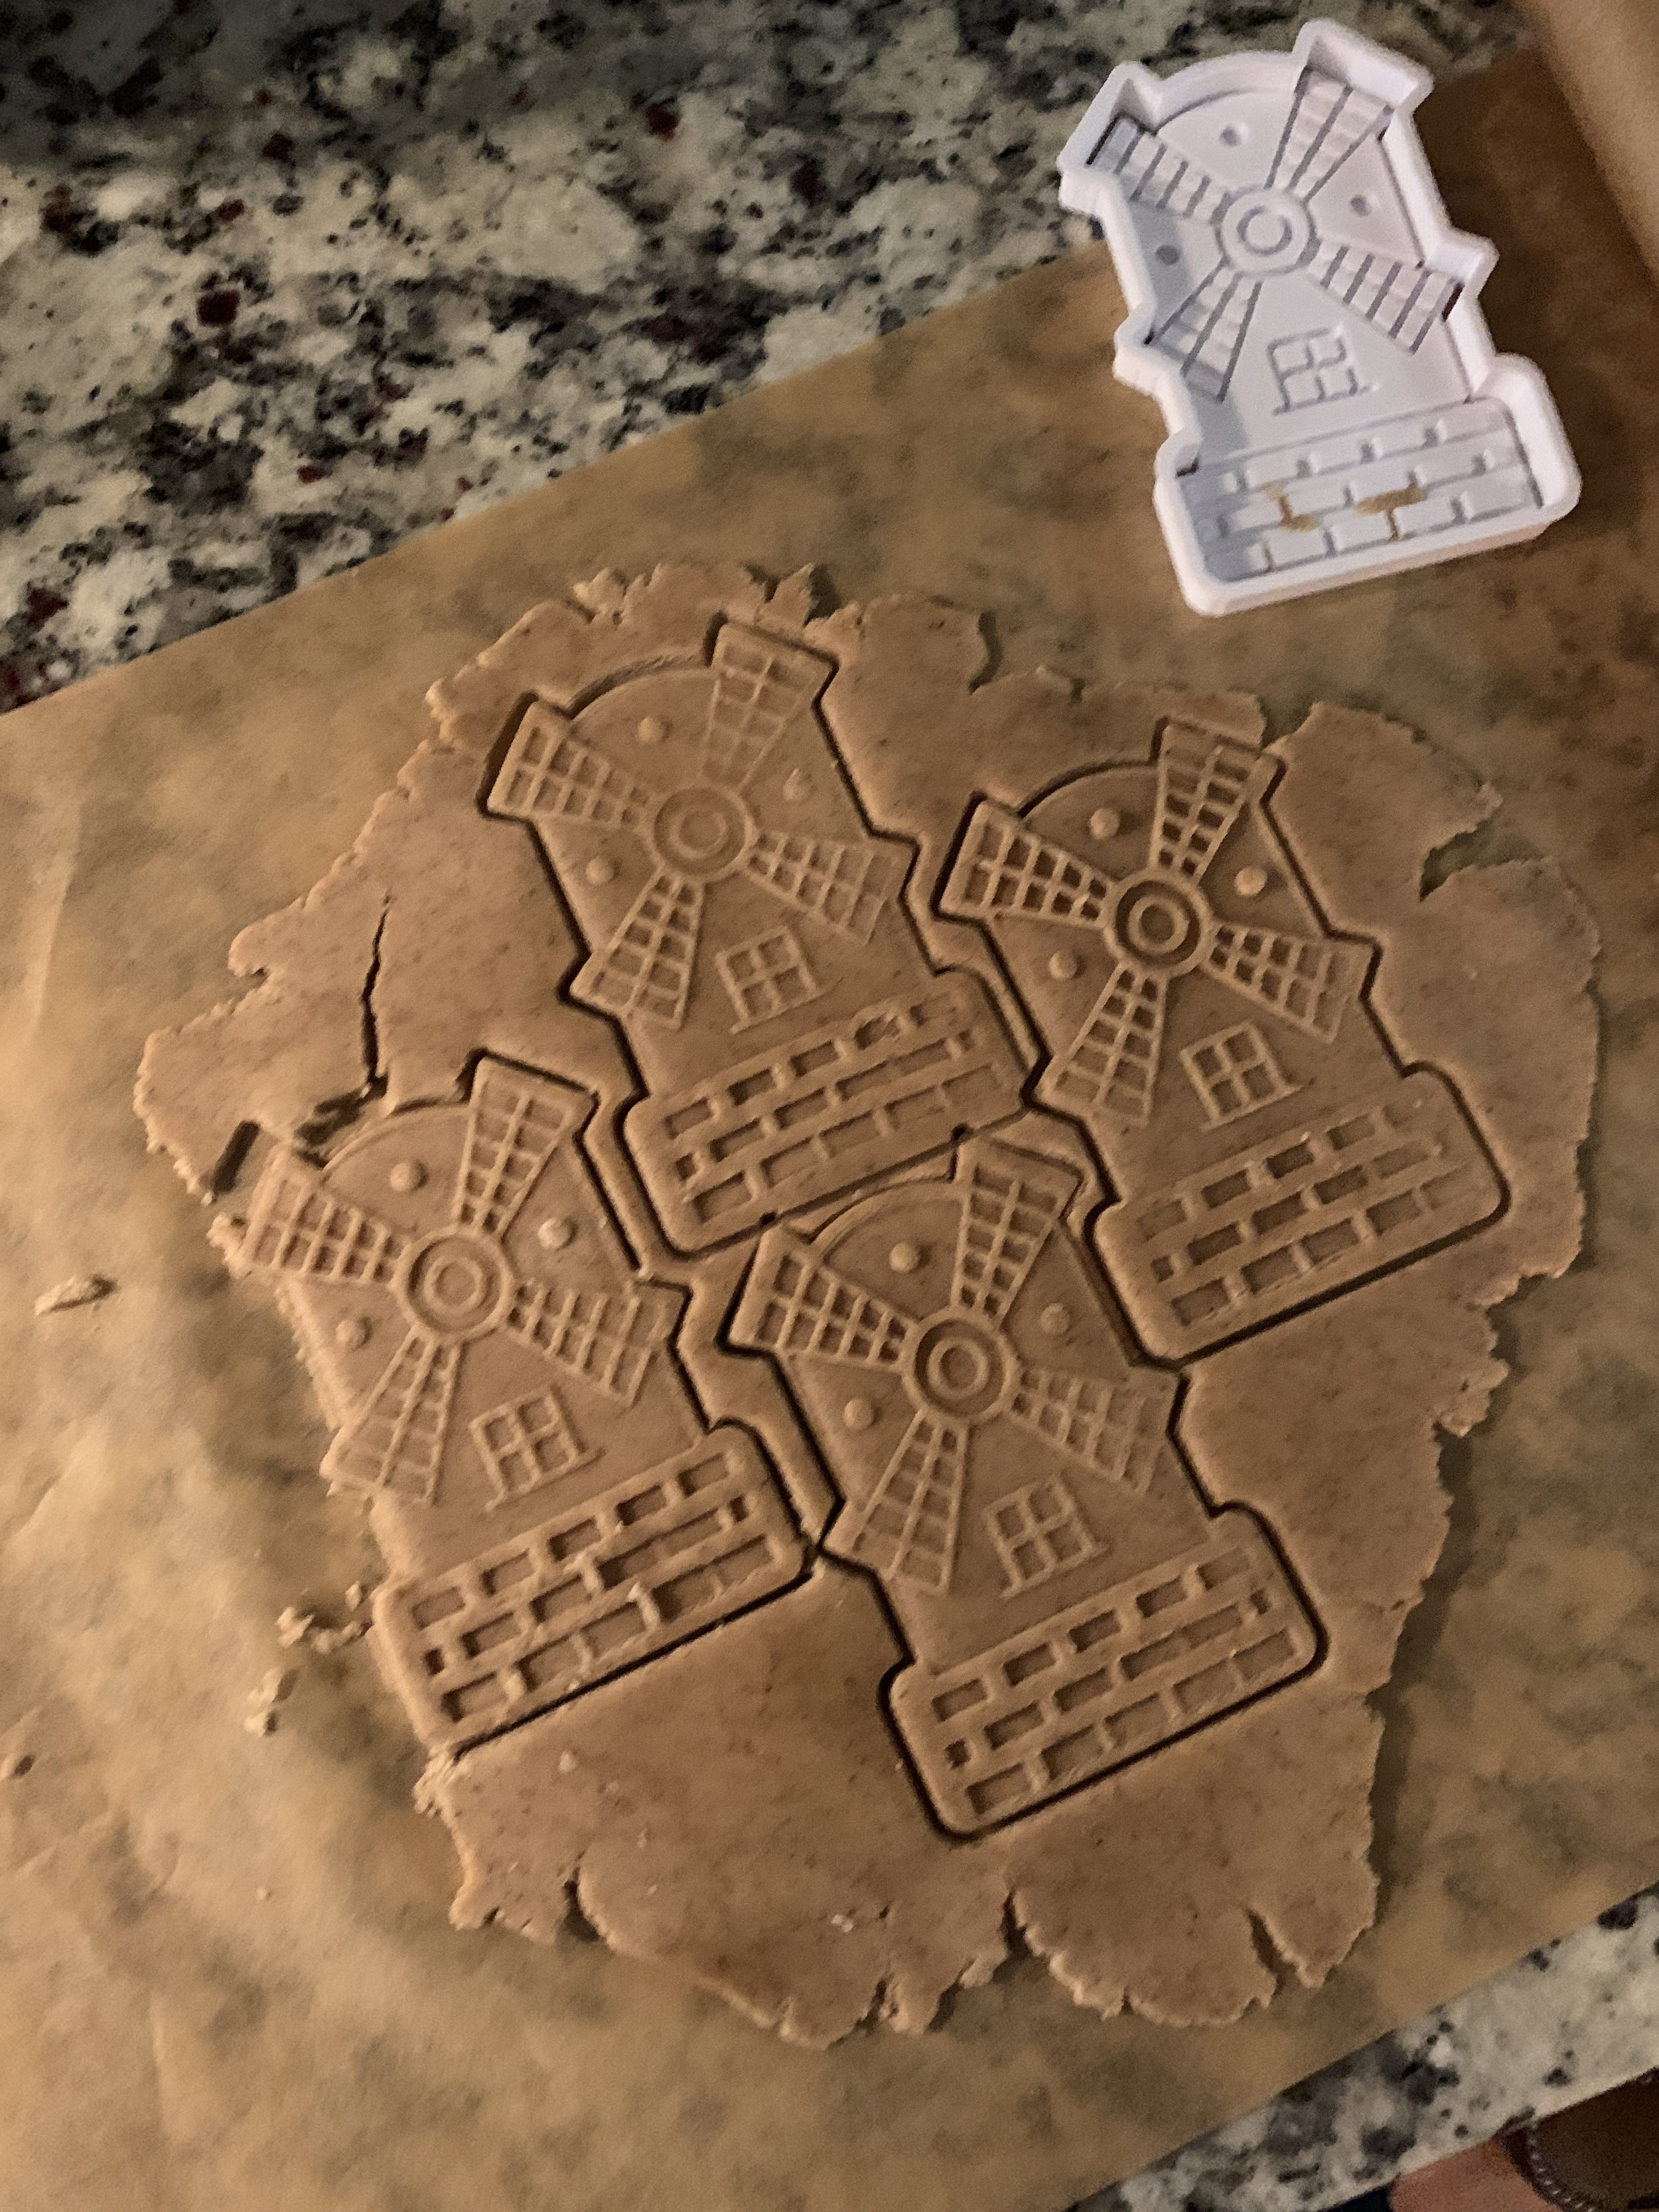 Pro tip - Dust the cookie stamp with a bit of flour to prevent the dough from sticking.